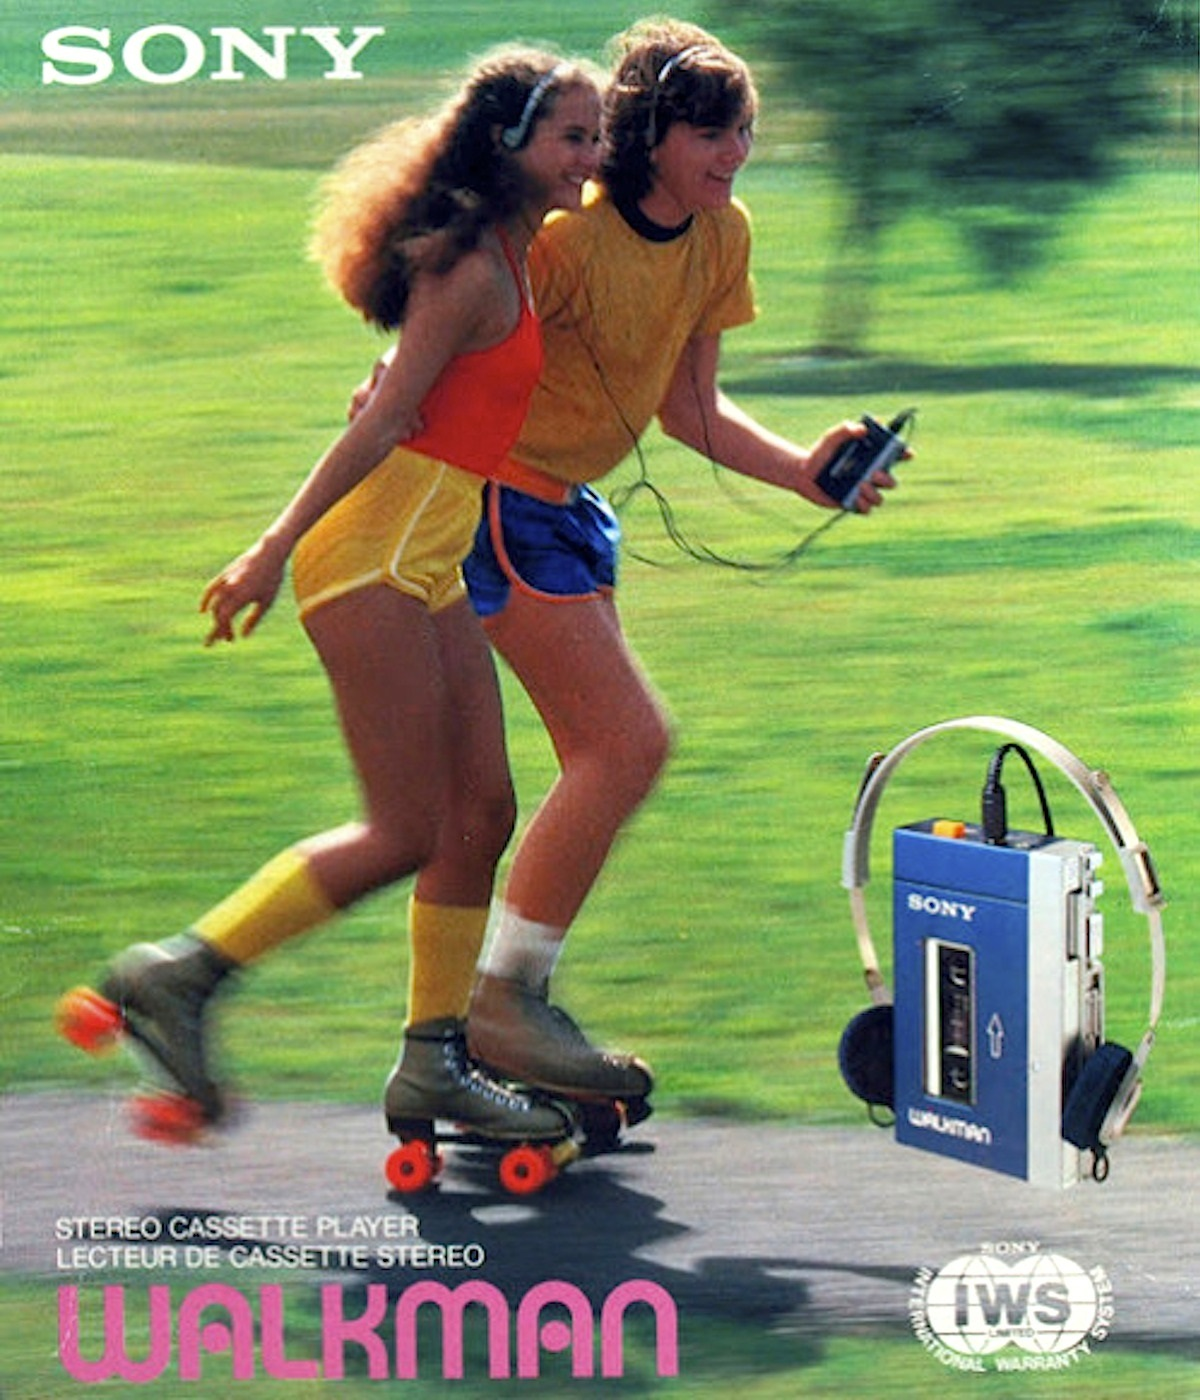 The Sony Walkman was big in the 80s